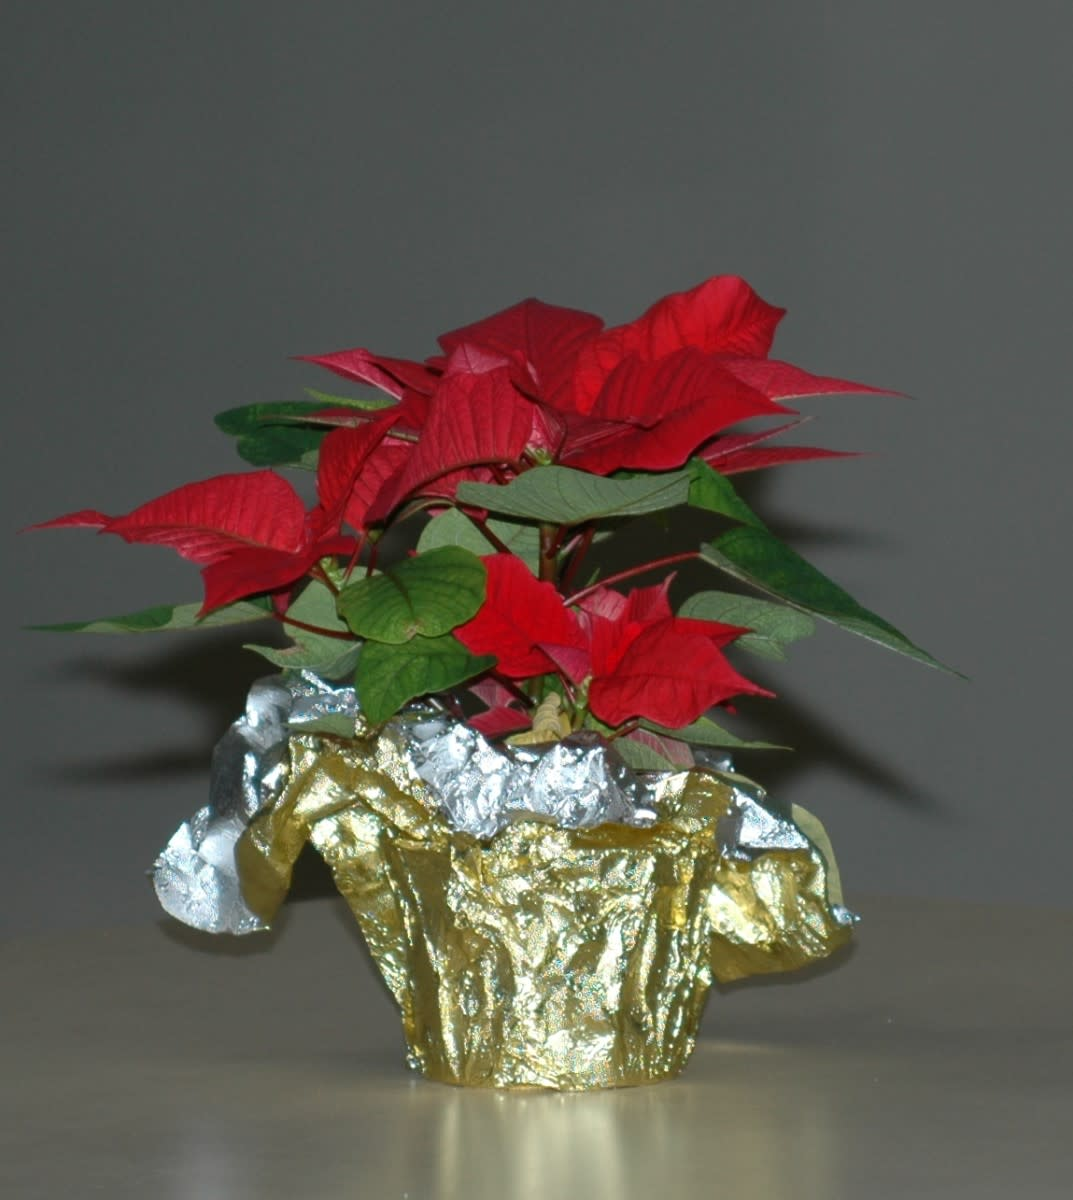 Poinsettias make the perfect gift!